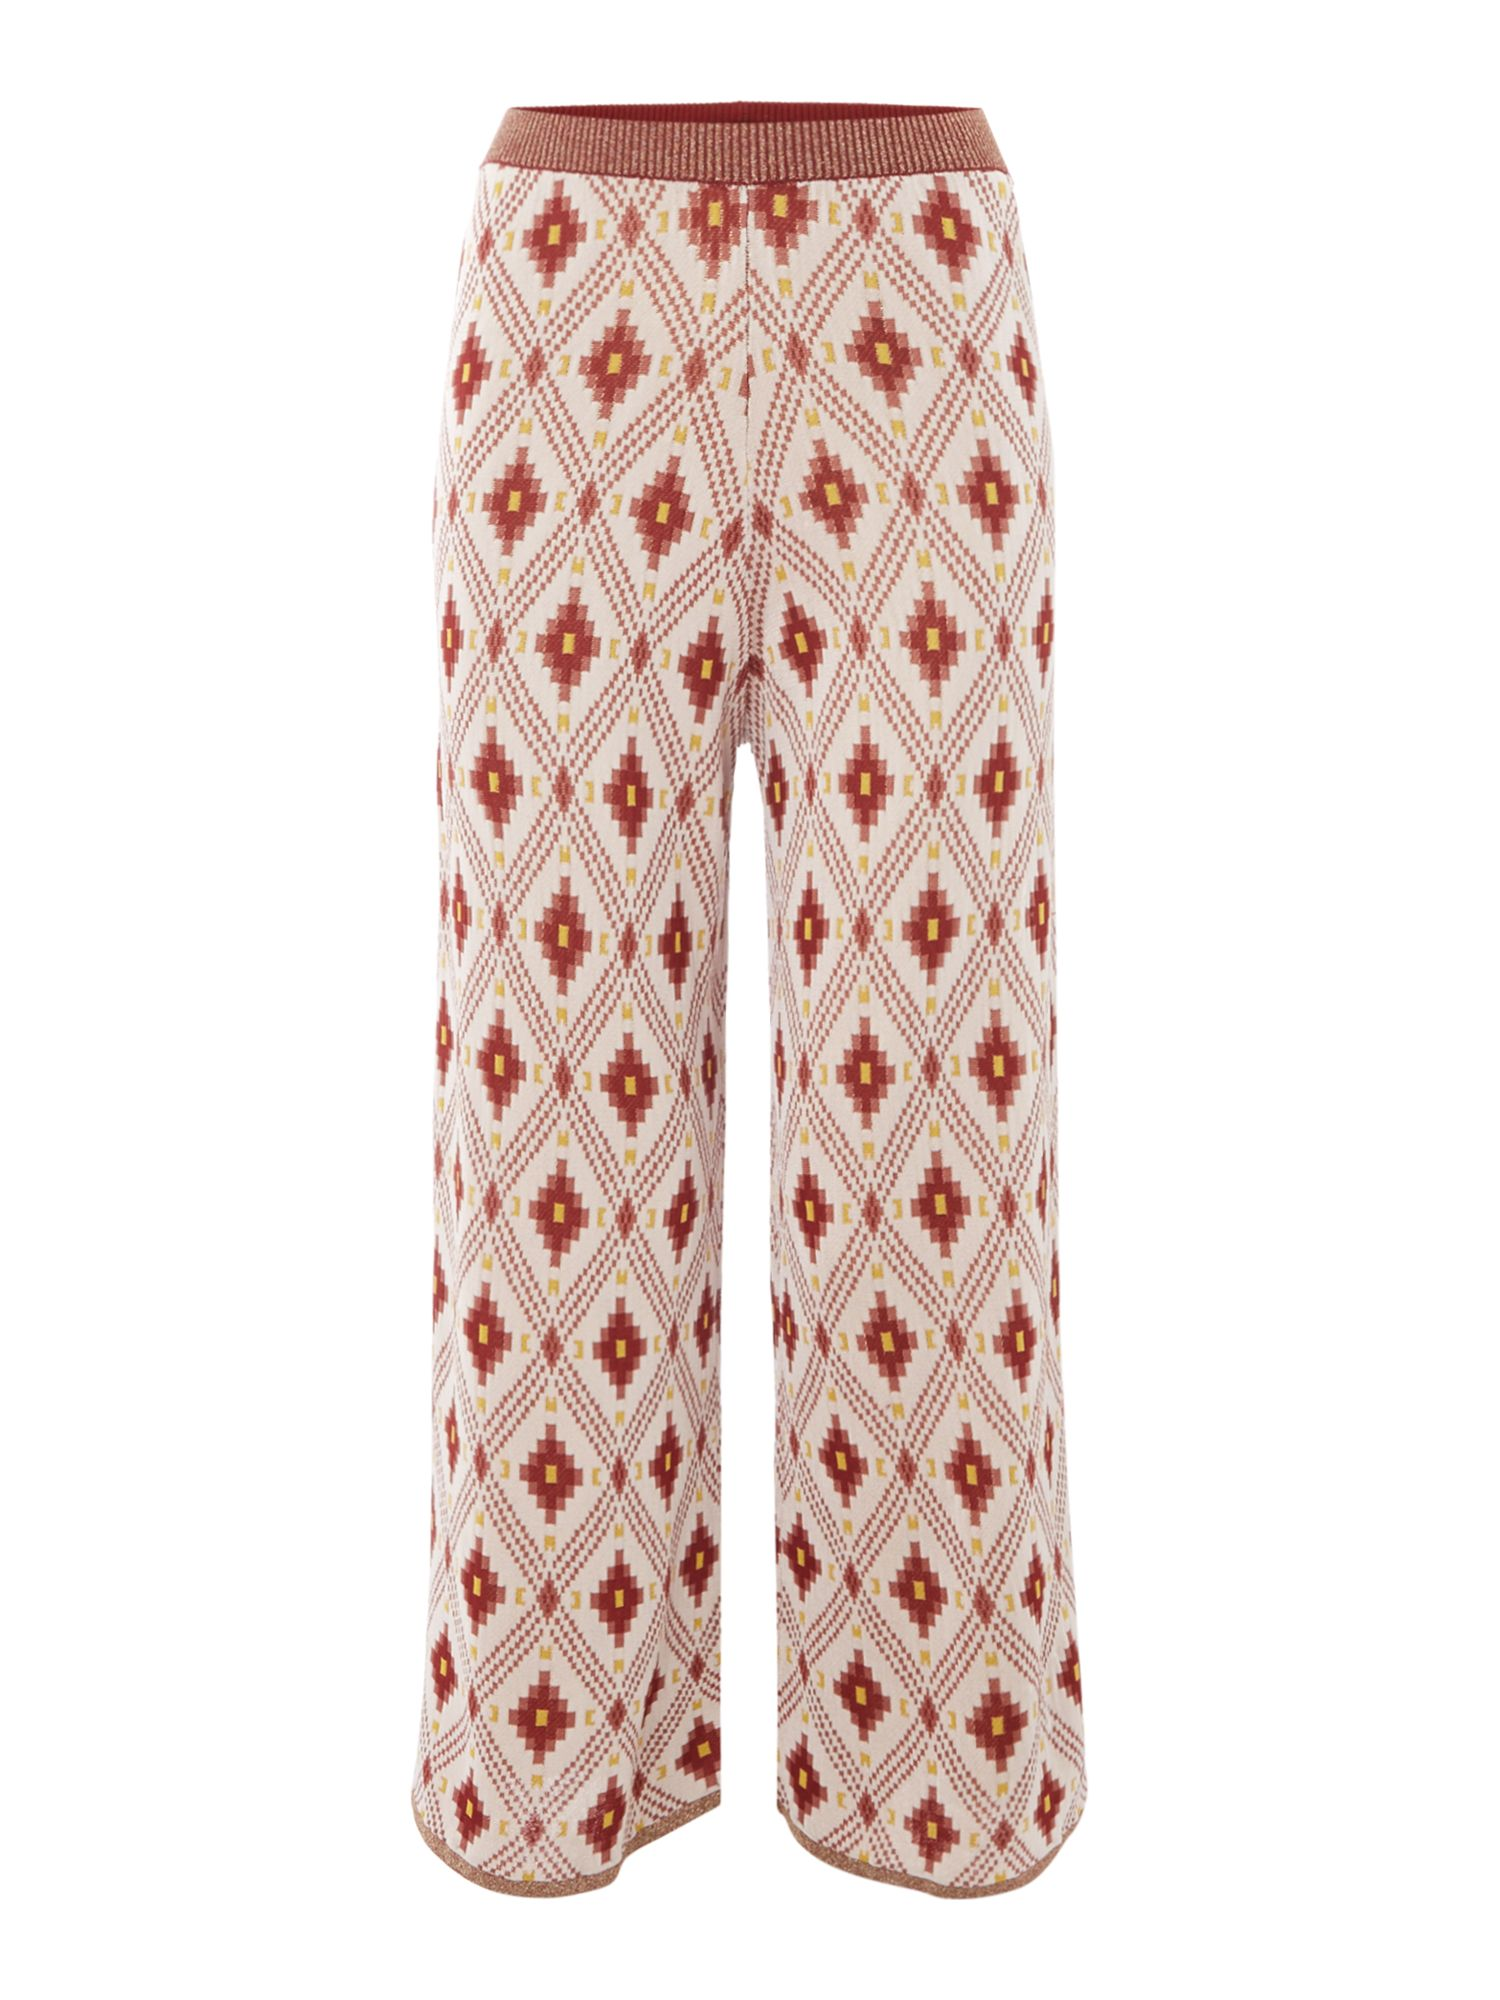 Maison Scotch Jacquard knitted pants, Multi-Coloured